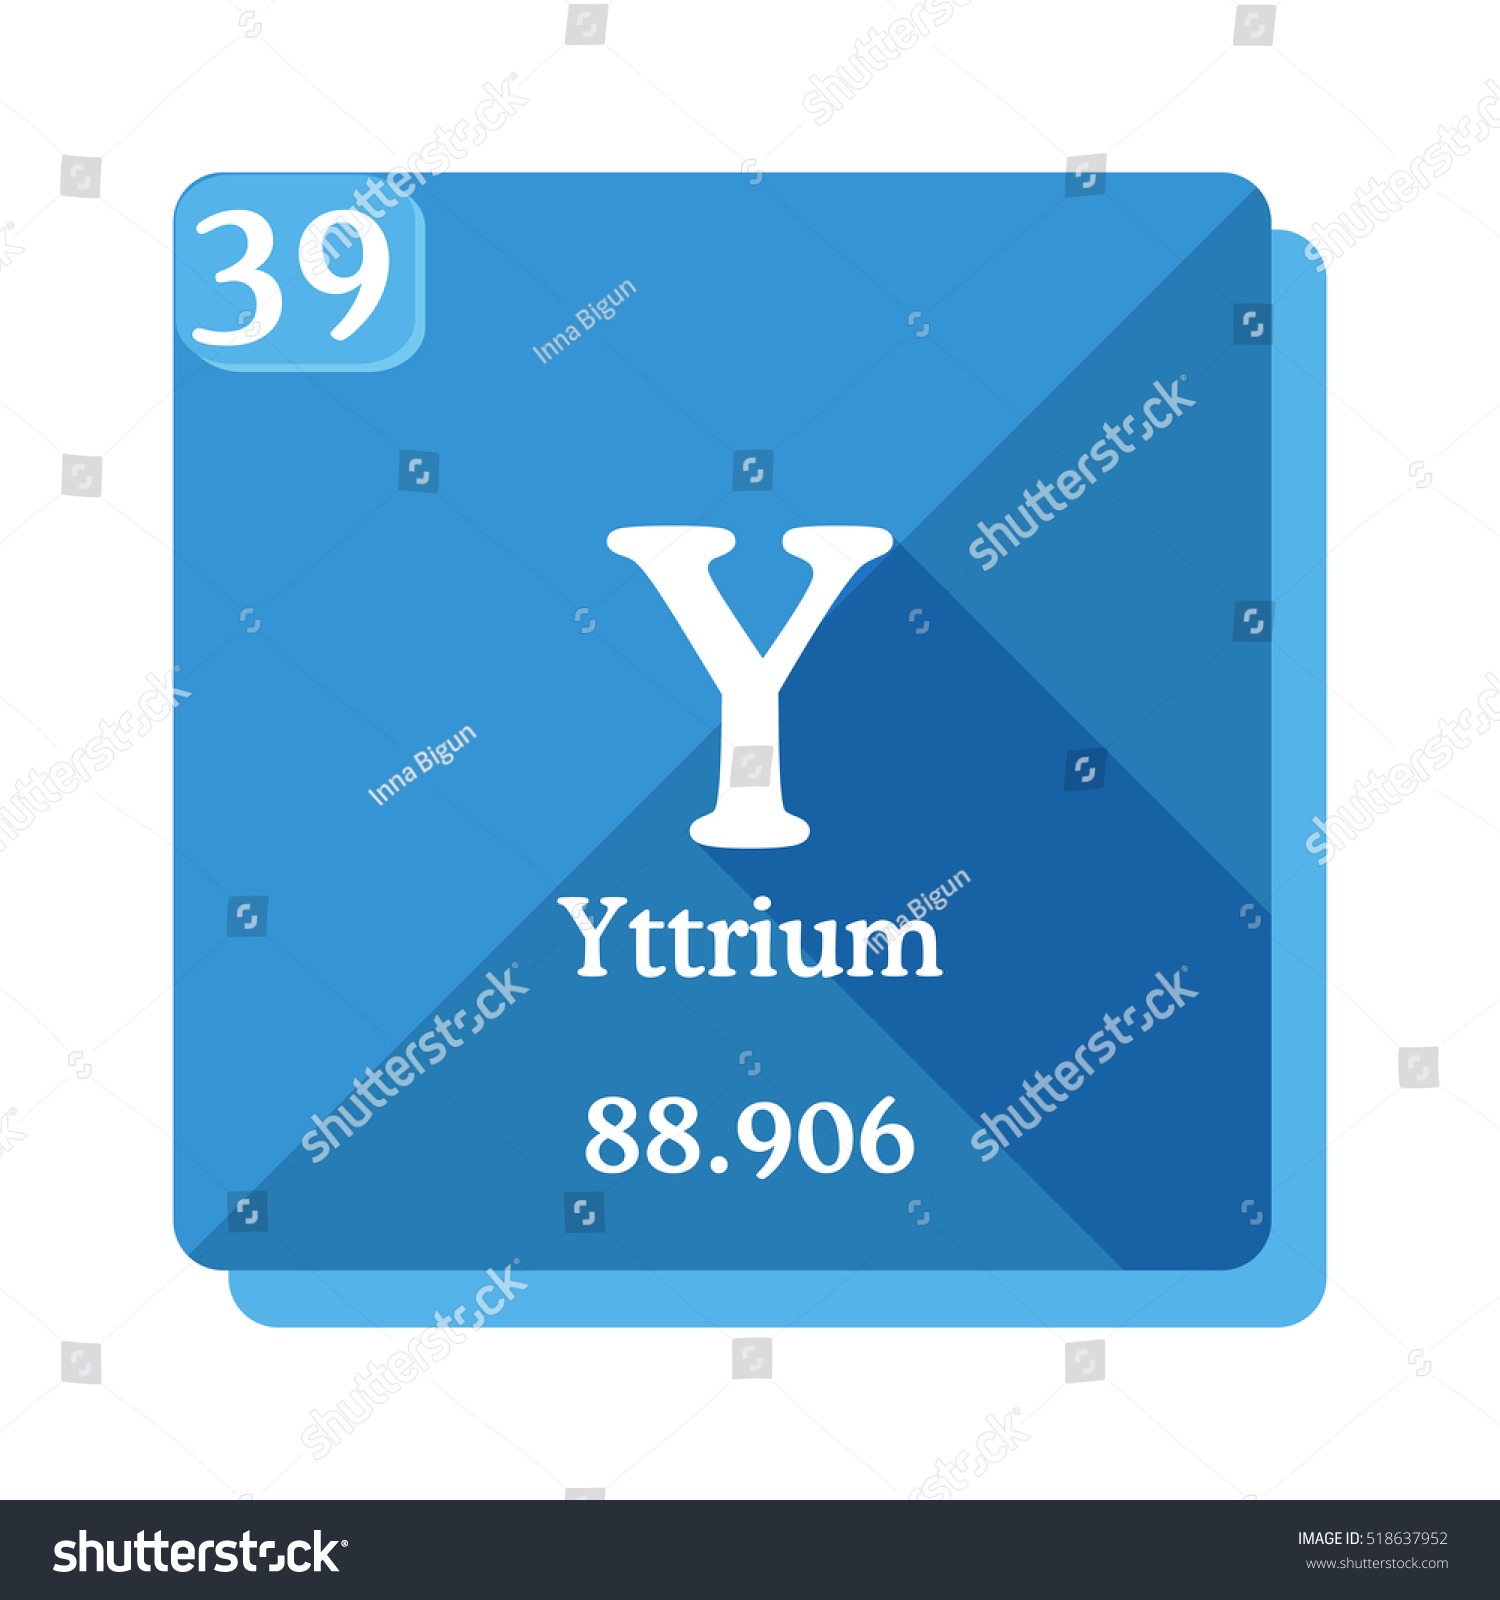 Yttrium y element periodic table flat stock vector 518637952 yttrium y element of the periodic table flat icon with long shadow urtaz Images